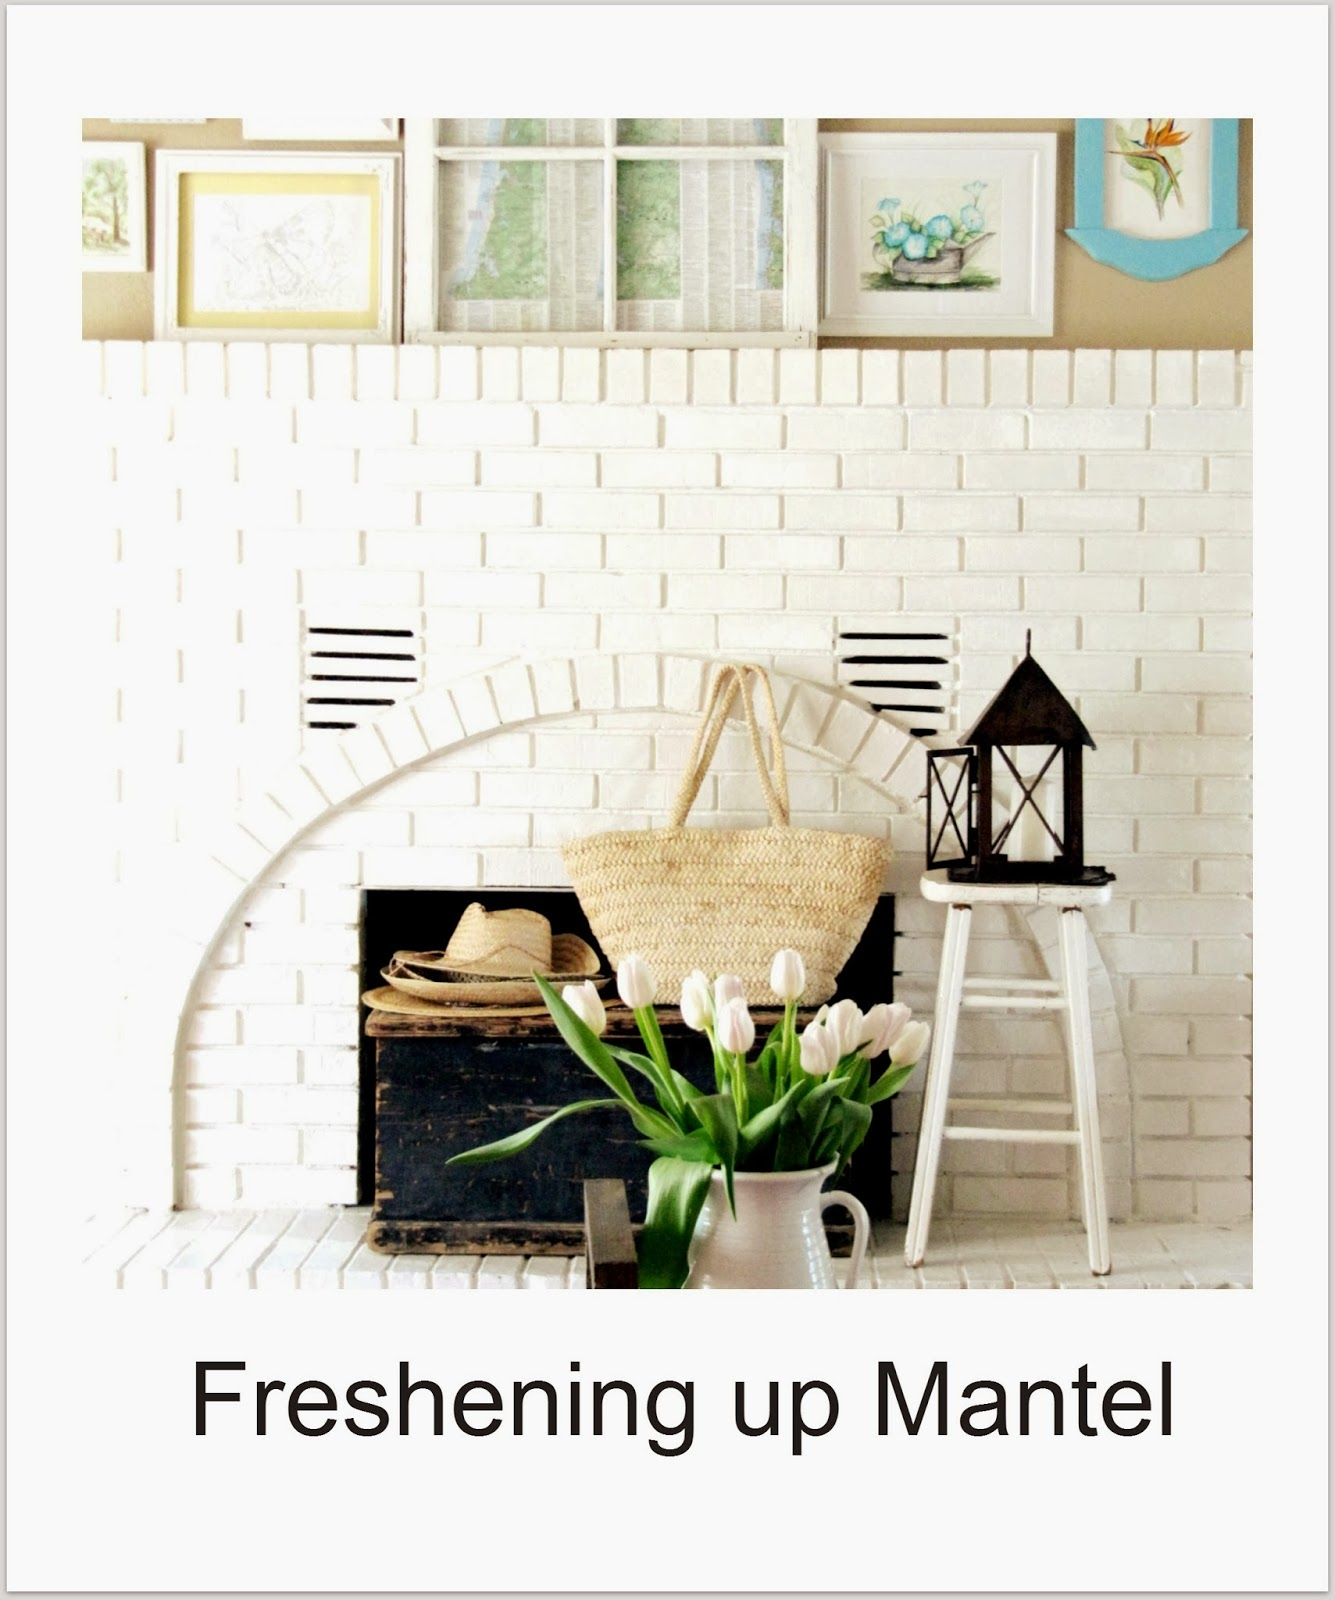 http://thewickerhouse.blogspot.com/2012/02/freshening-up-living-room.html